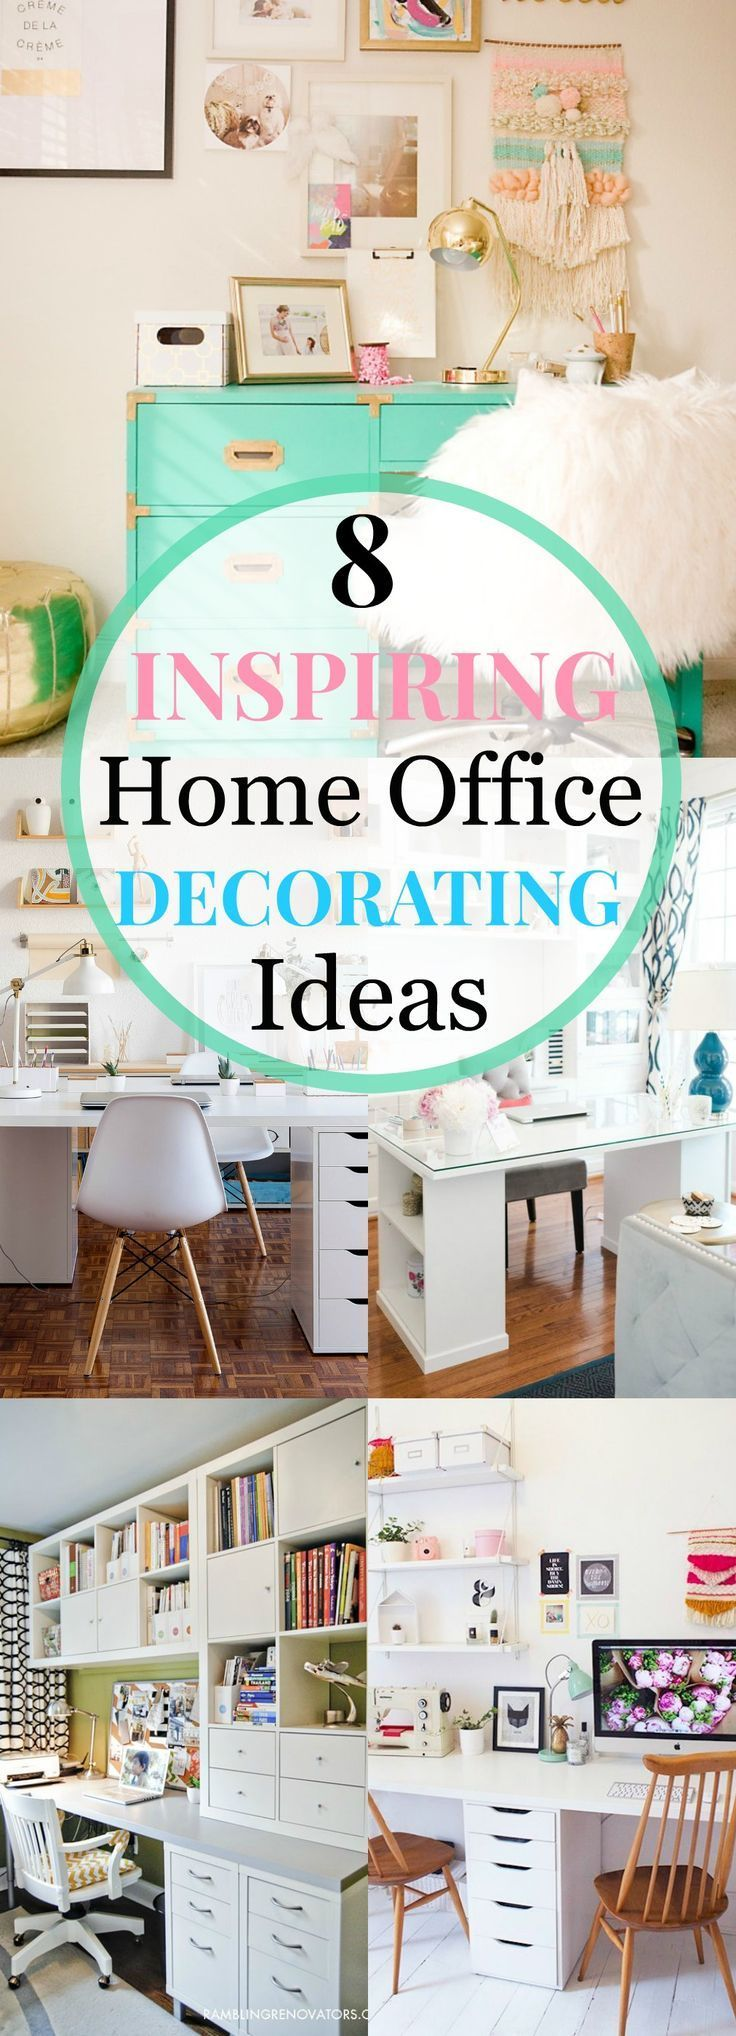 Best Home Office Decorating Ideas For Her Images On Pinterest - Cute office decorating ideas